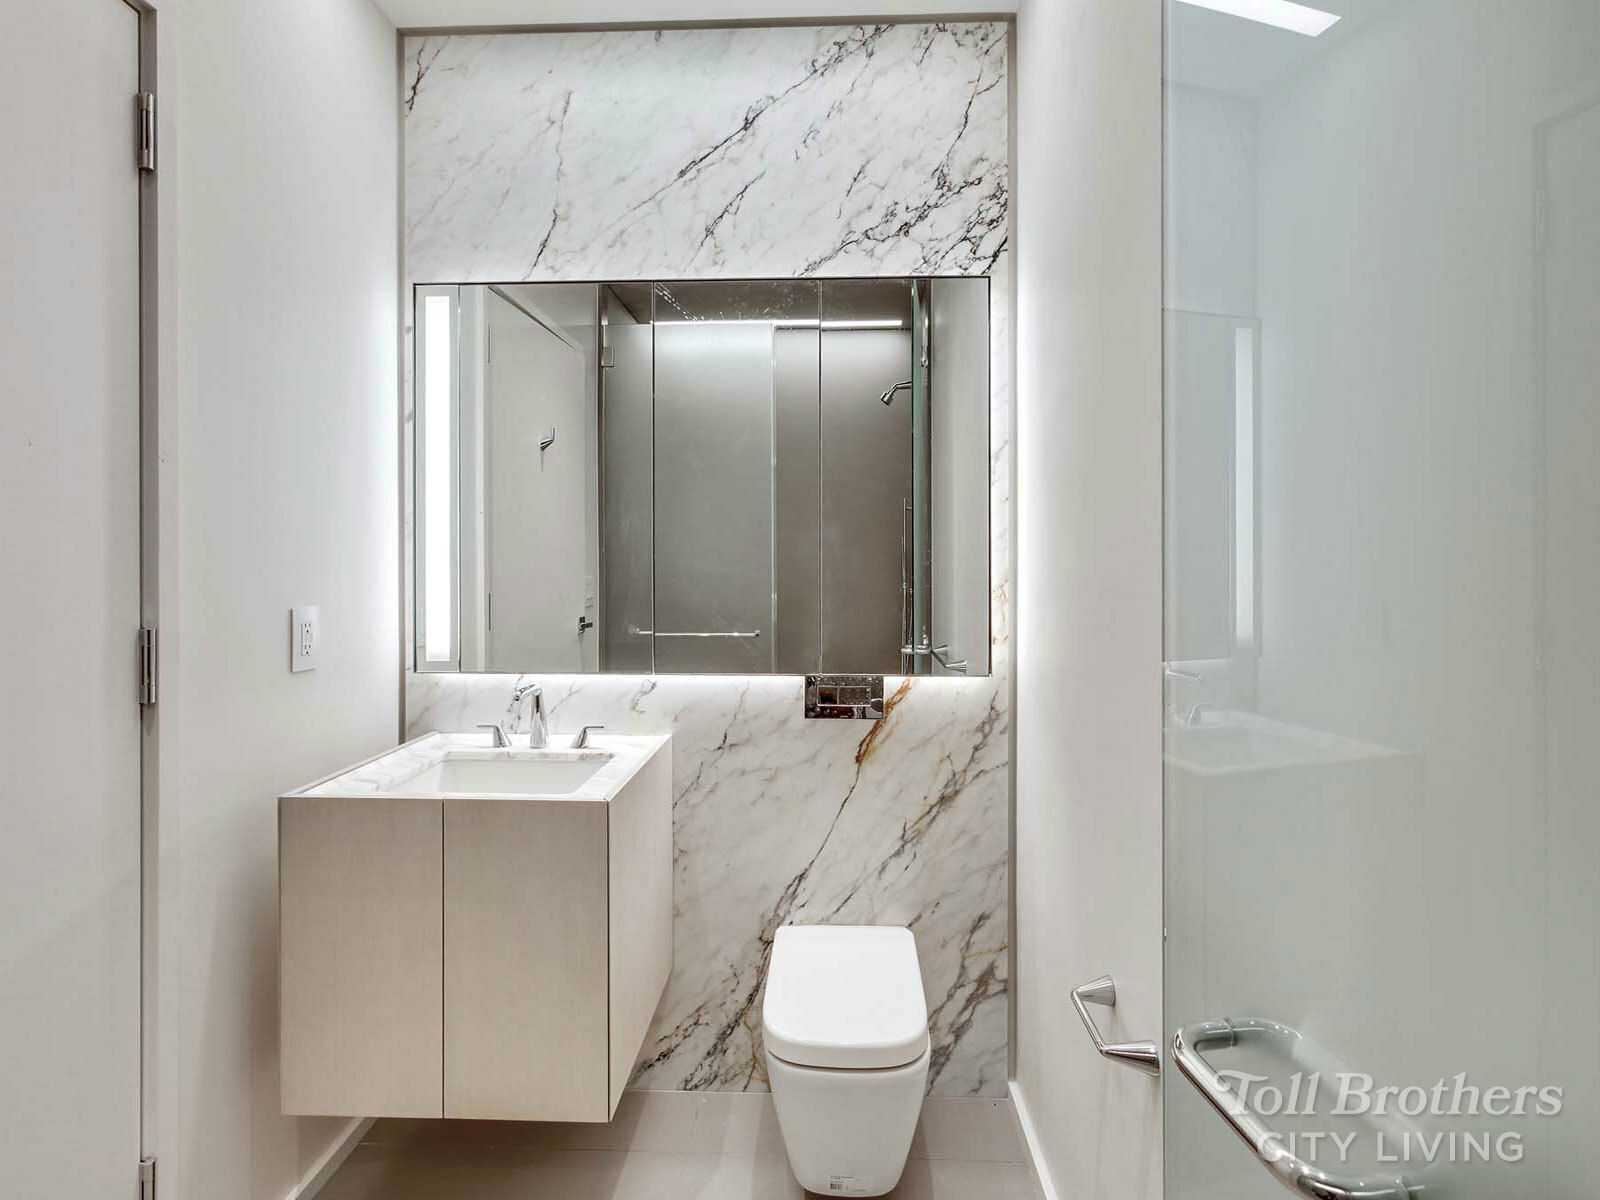 Bathroom featured in the N1004 By Toll Brothers in New York, NY